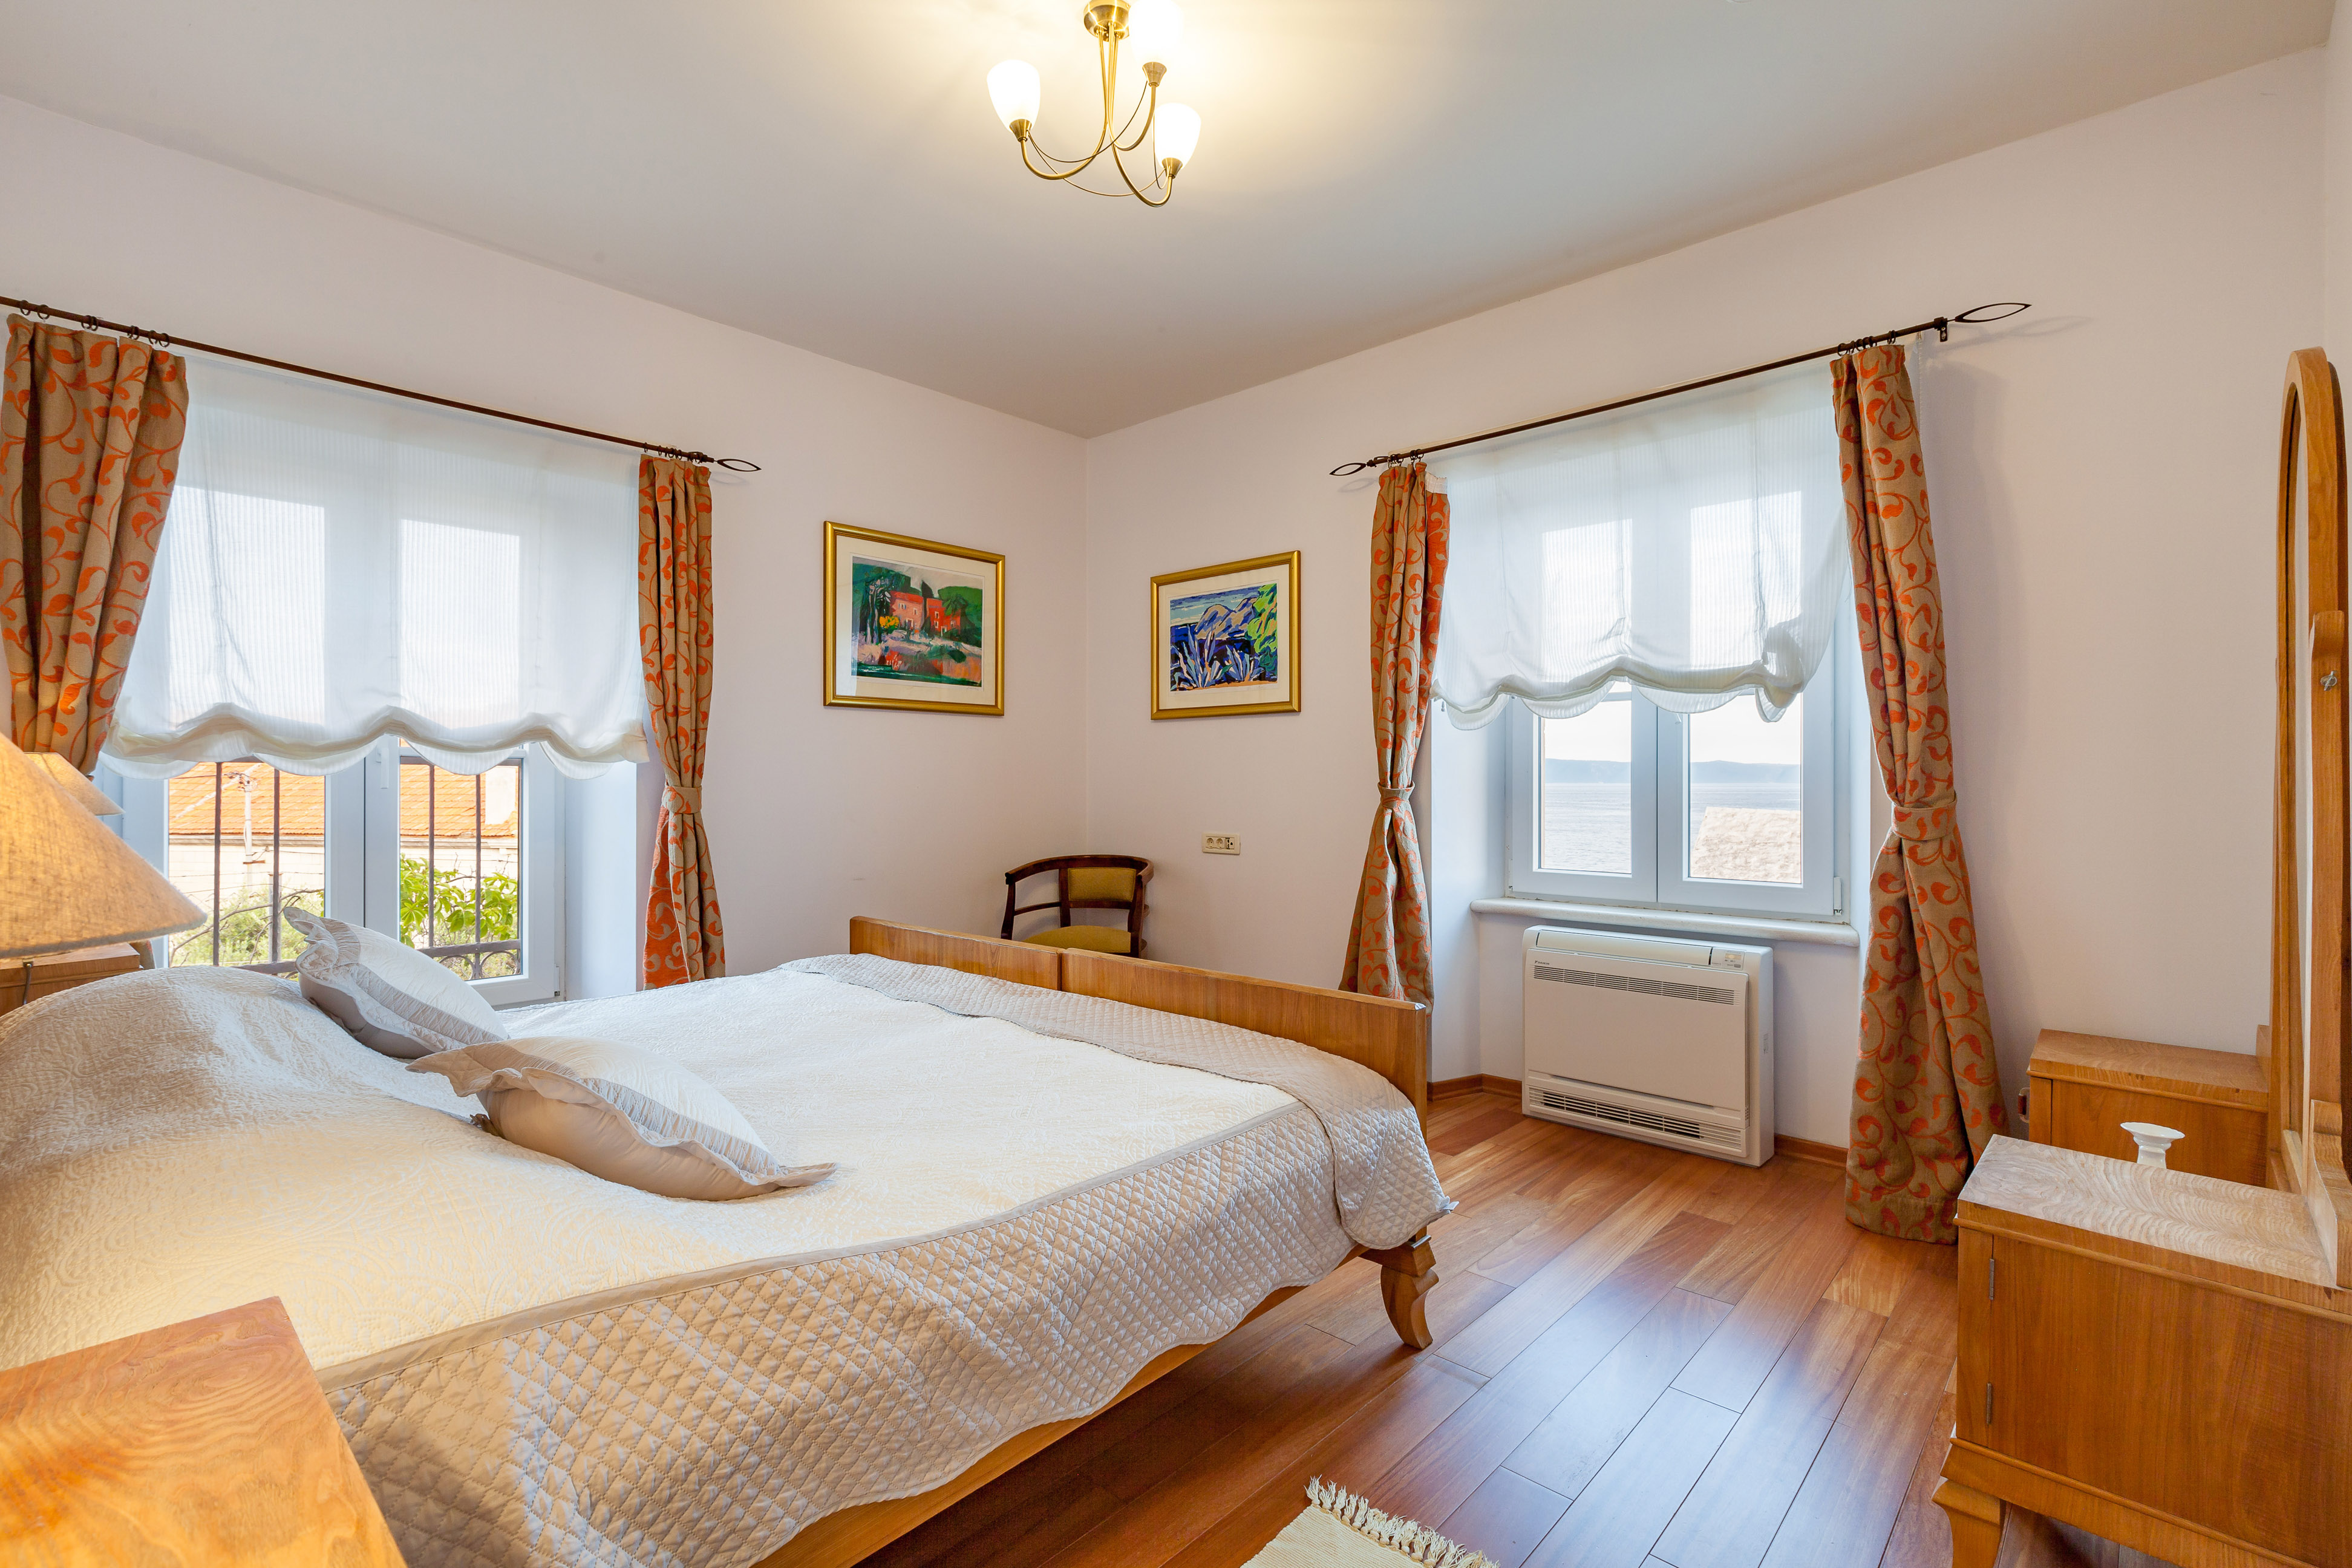 Double bedded room in the Villa Mir Vami